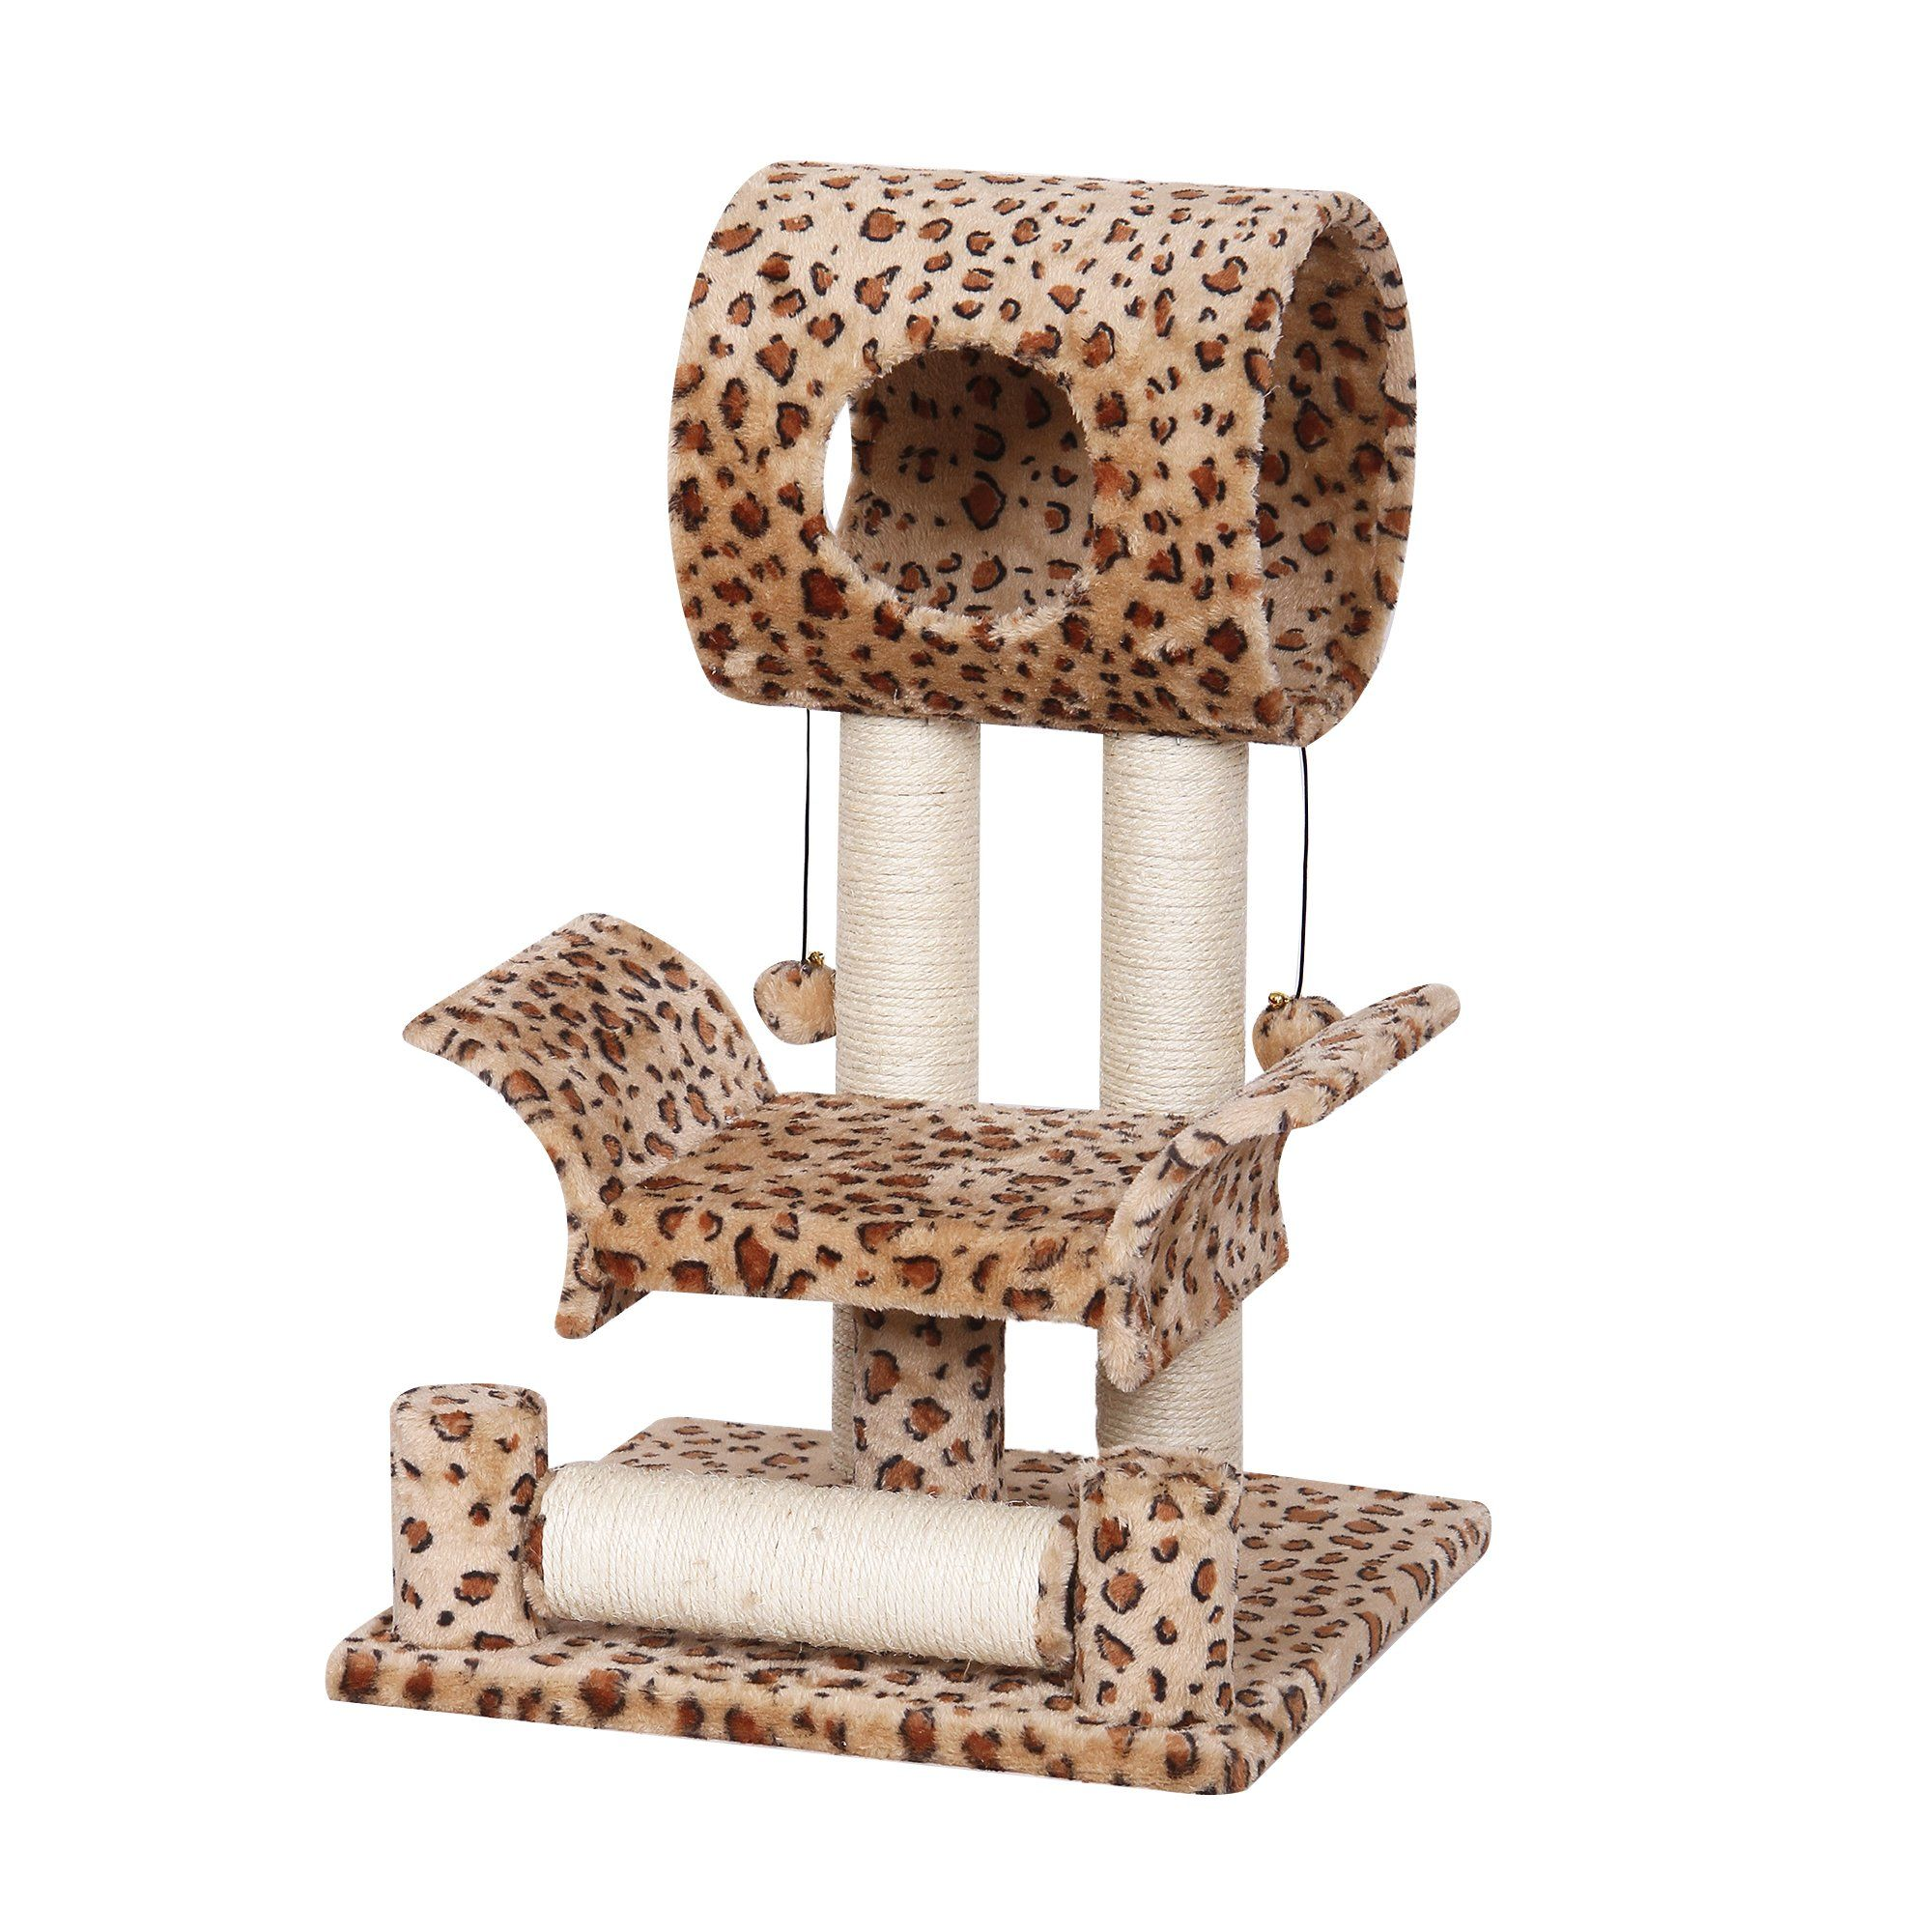 Catry Leopard Print Cat Tree Condo House 18 X 18 X 28 Brown Want To Know More Click On The Image This Is An Affiliate Cat Tree Condo Cat Tree Brown Cat